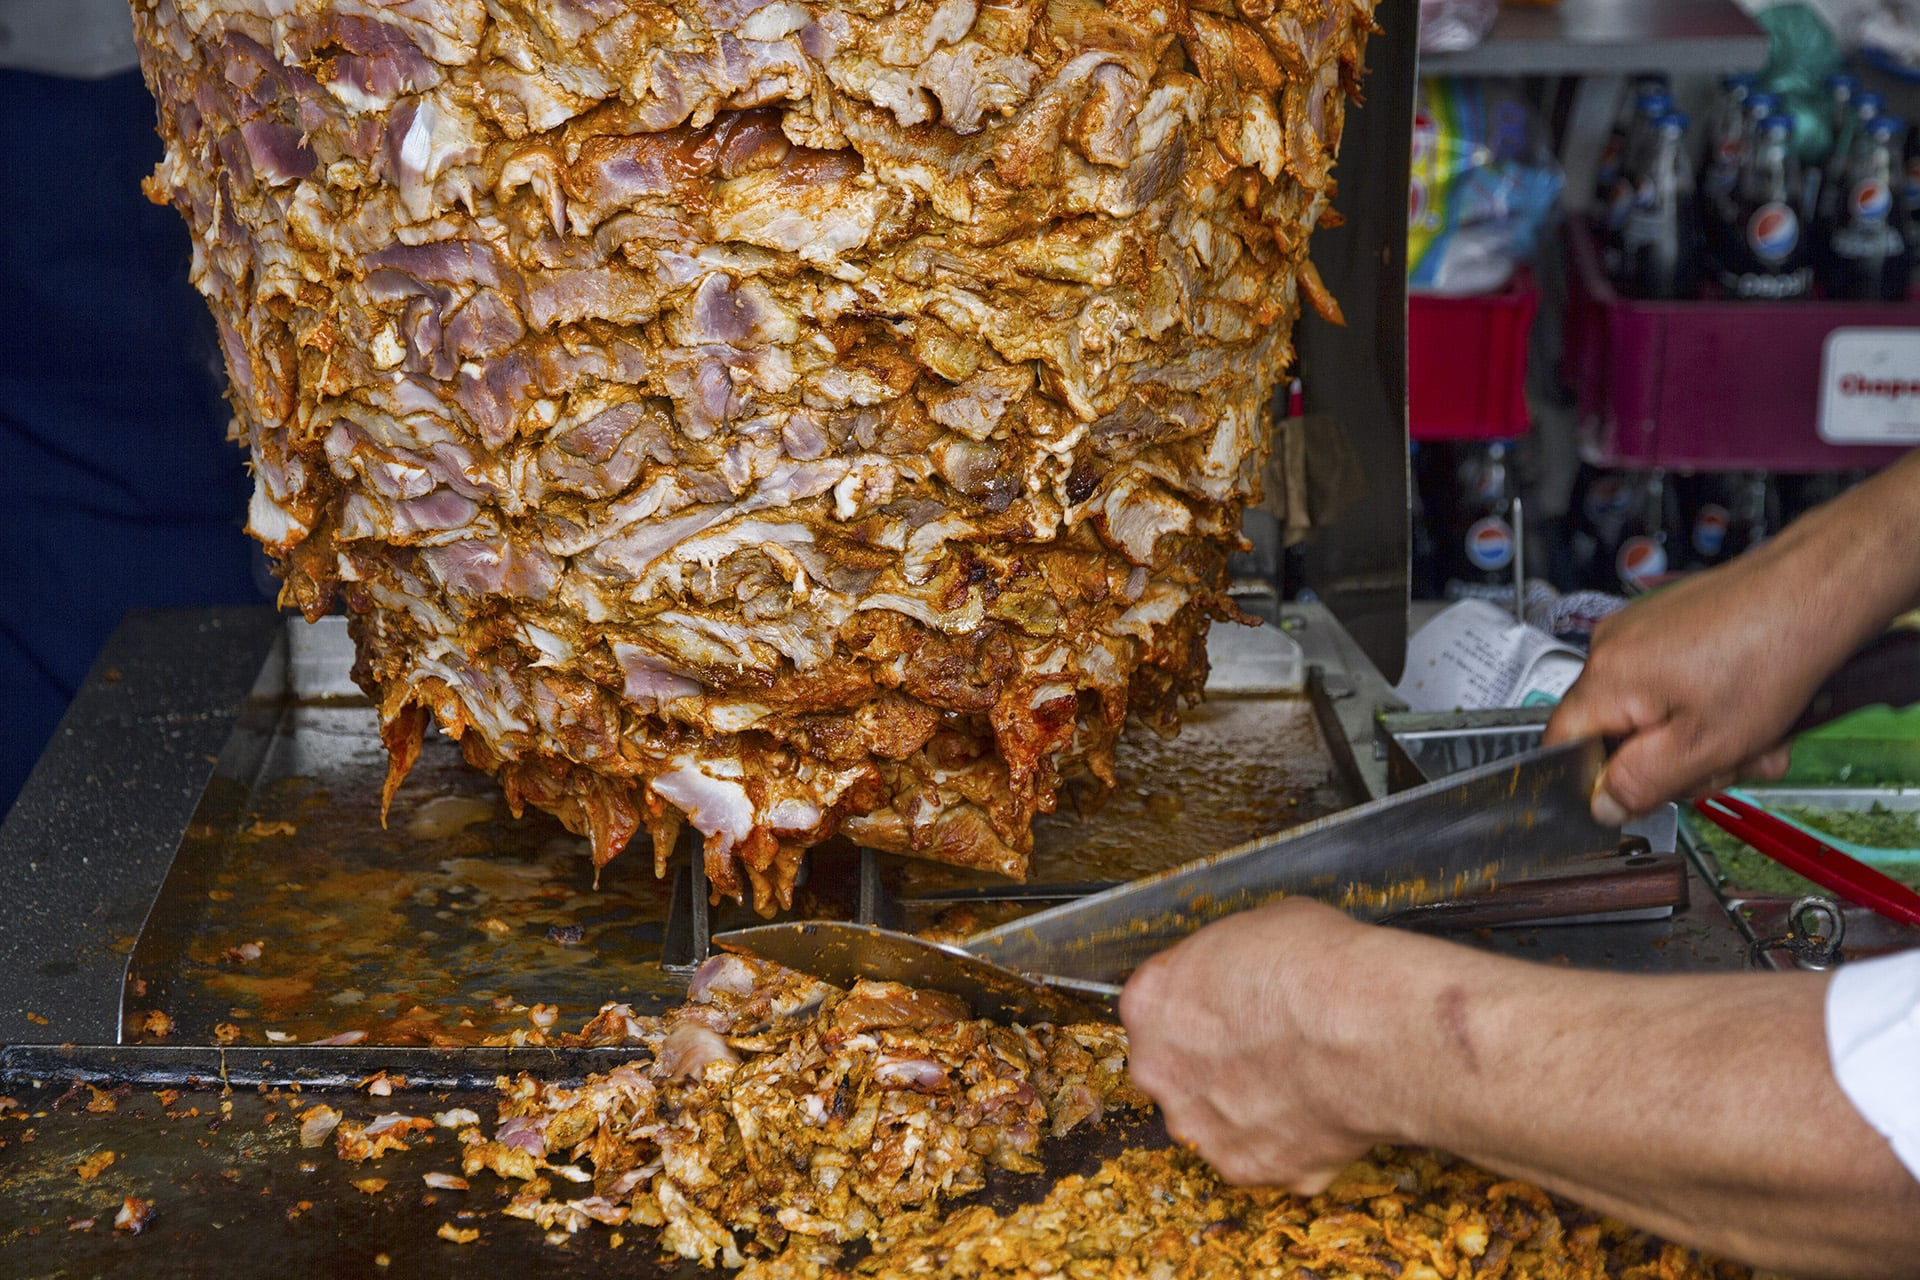 A proven sign of a good lunch spot is to observe the locals. A gathering of businessmen and women looking longingly at a rotating heap of meat is likely not a quarterly financial meeting.  Tacos al pastor  it is.